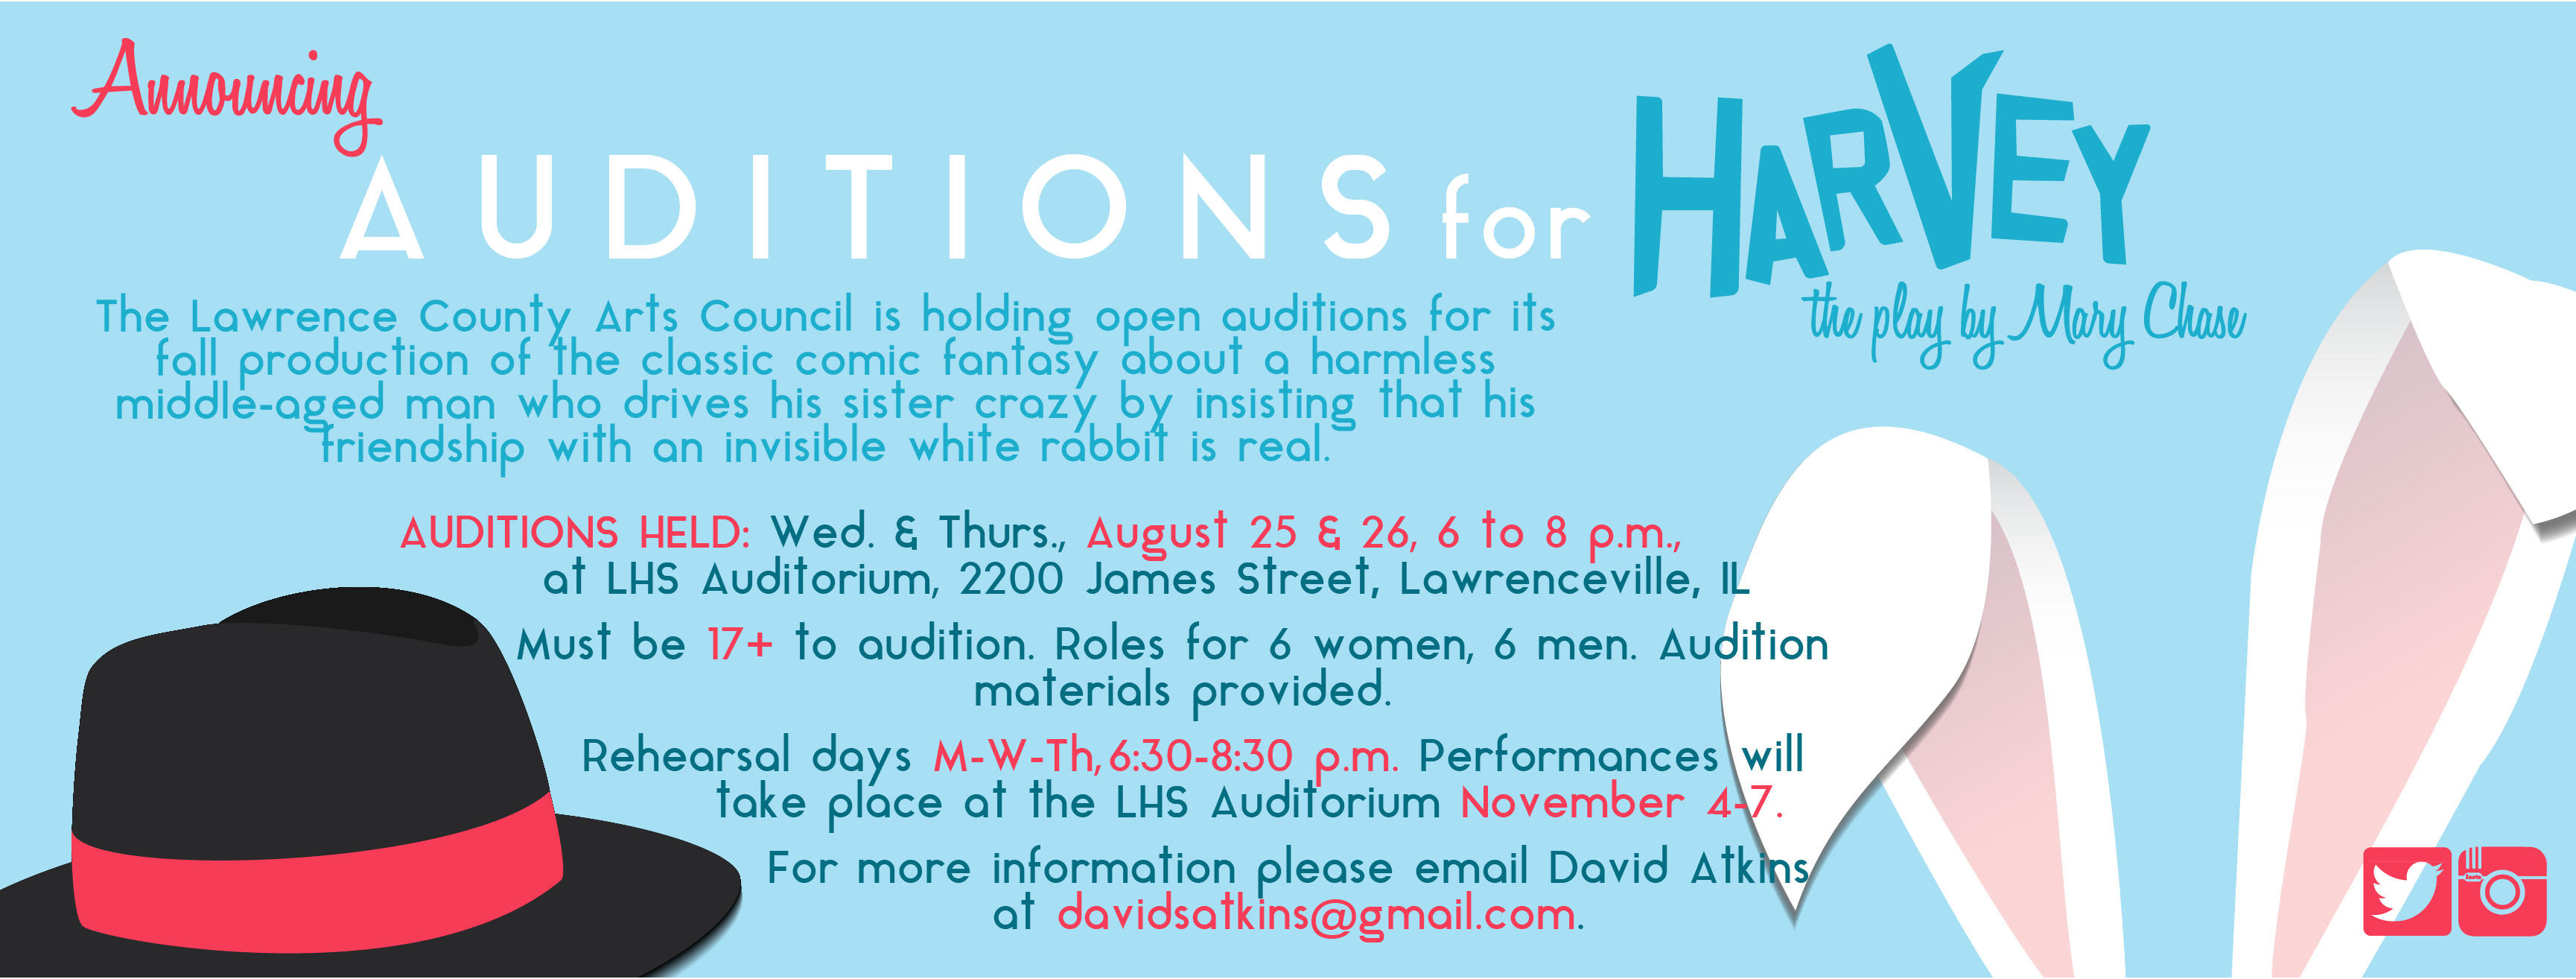 Harvey Auditions